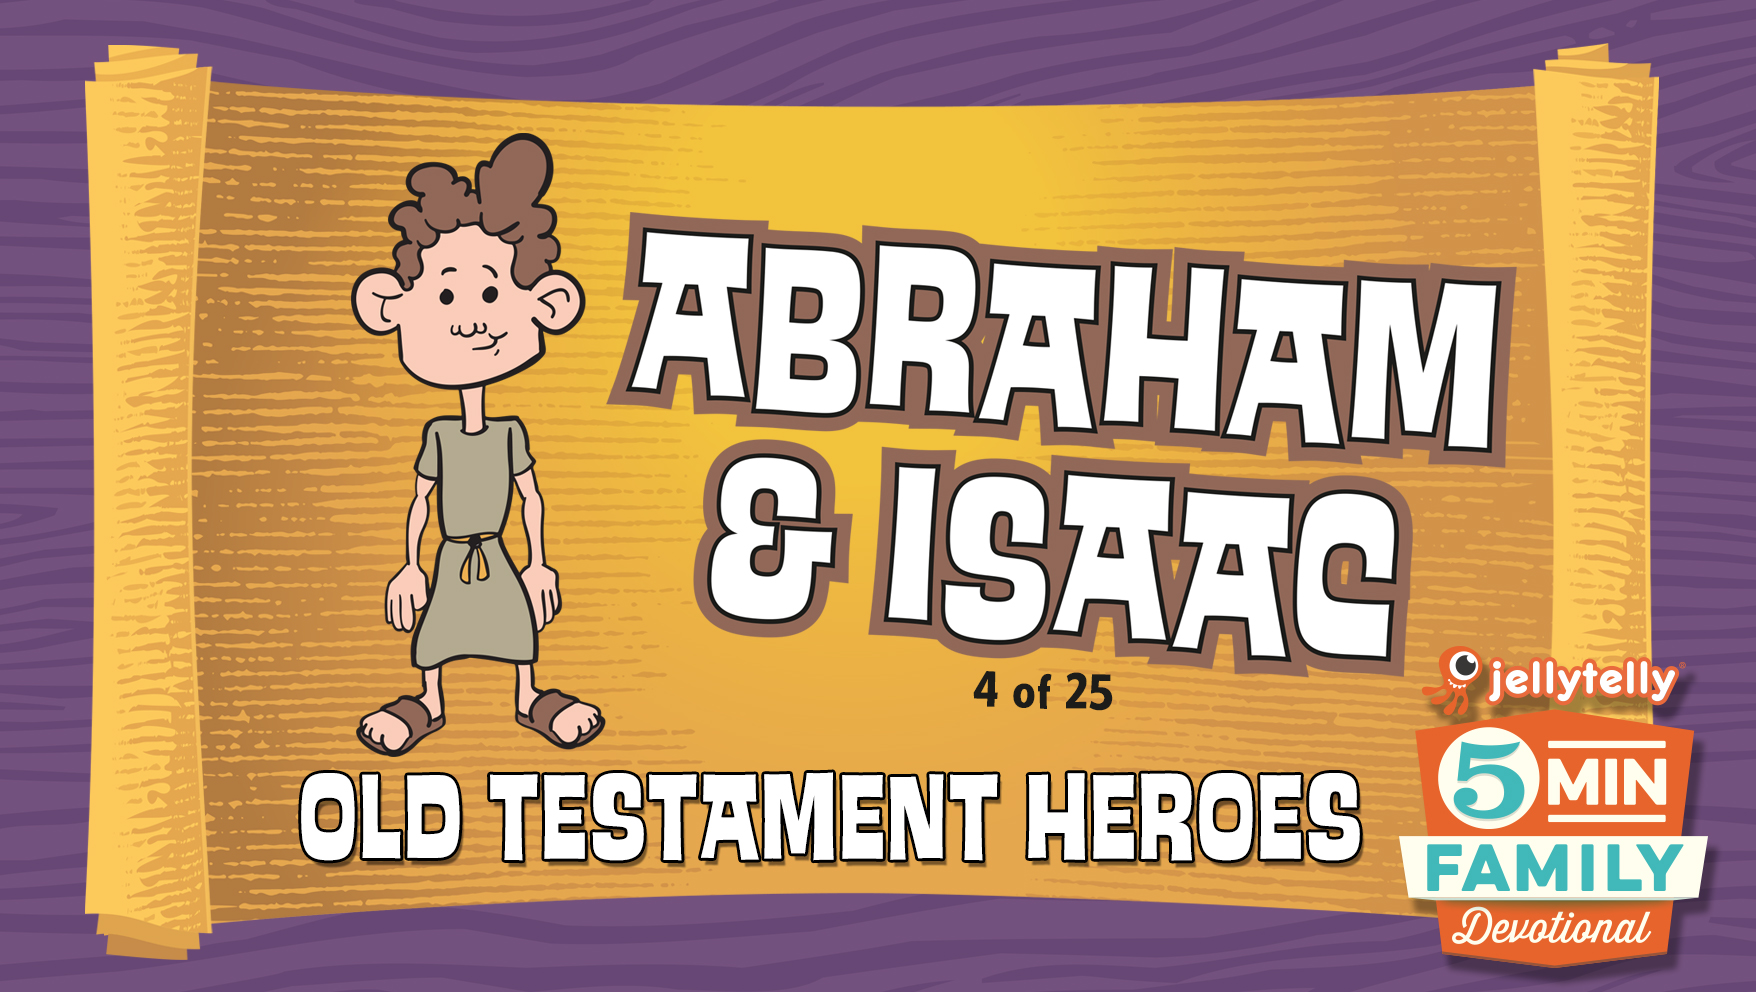 Isaac: Old Testament Heroes - 5 Minute Family Devotional